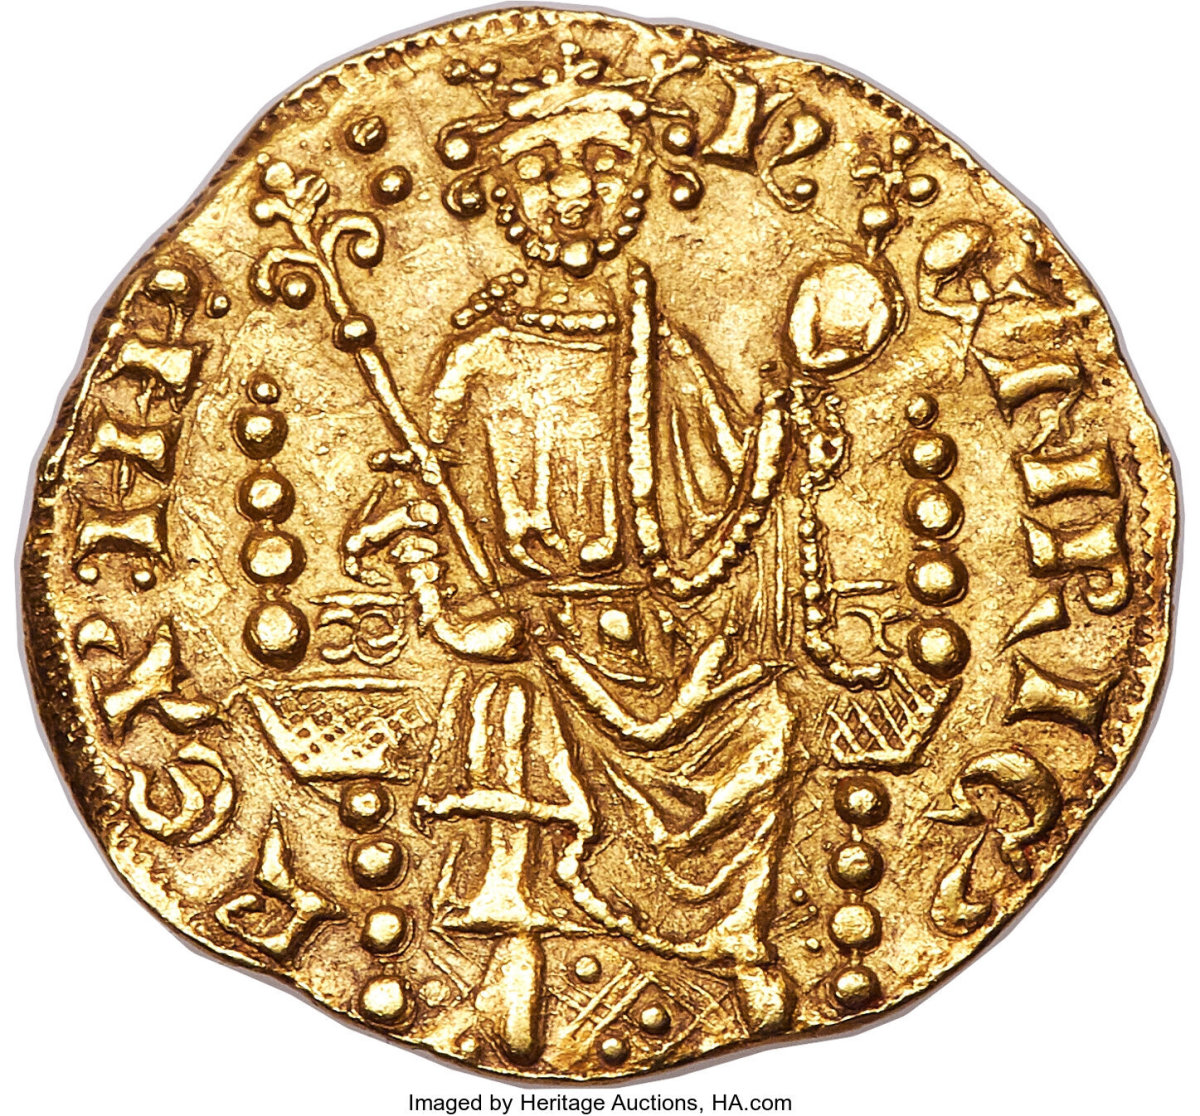 The first gold coin struck in England.